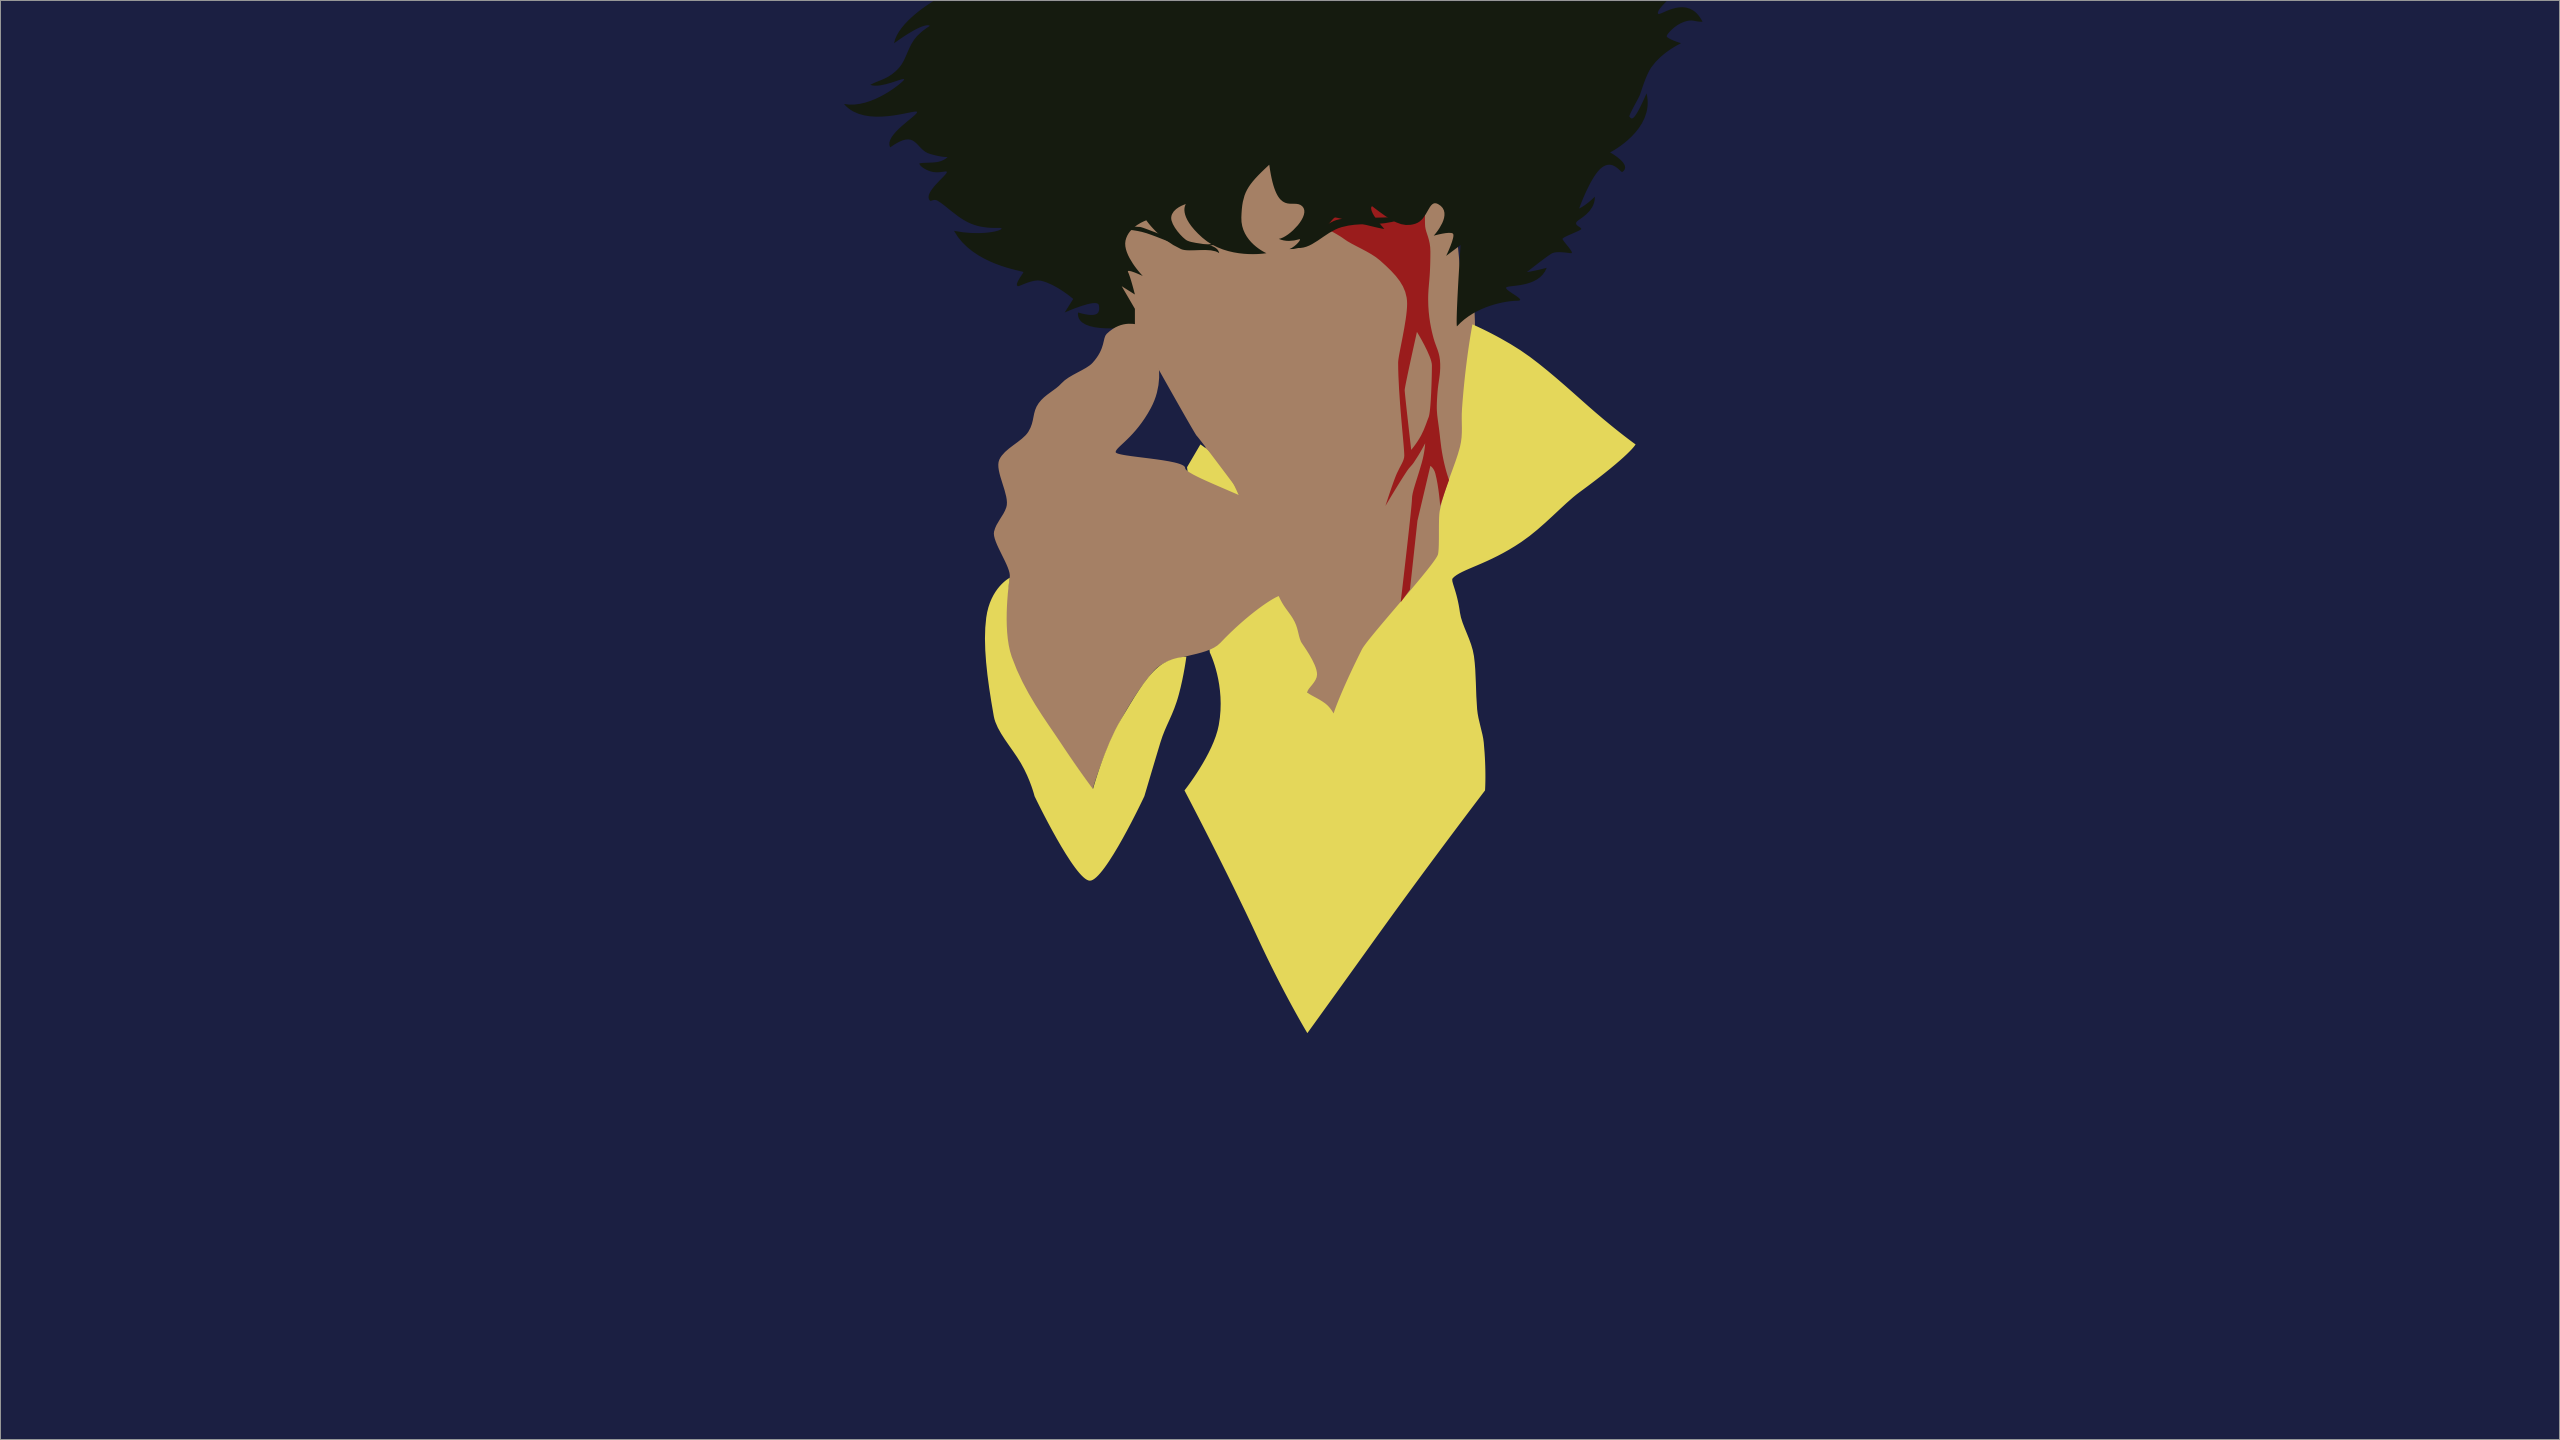 Cowboy Bebop Favourites By Sarahcarswell On Deviantart Cowboy Bebop Wallpapers Anime Wallpaper Cowboy Anime